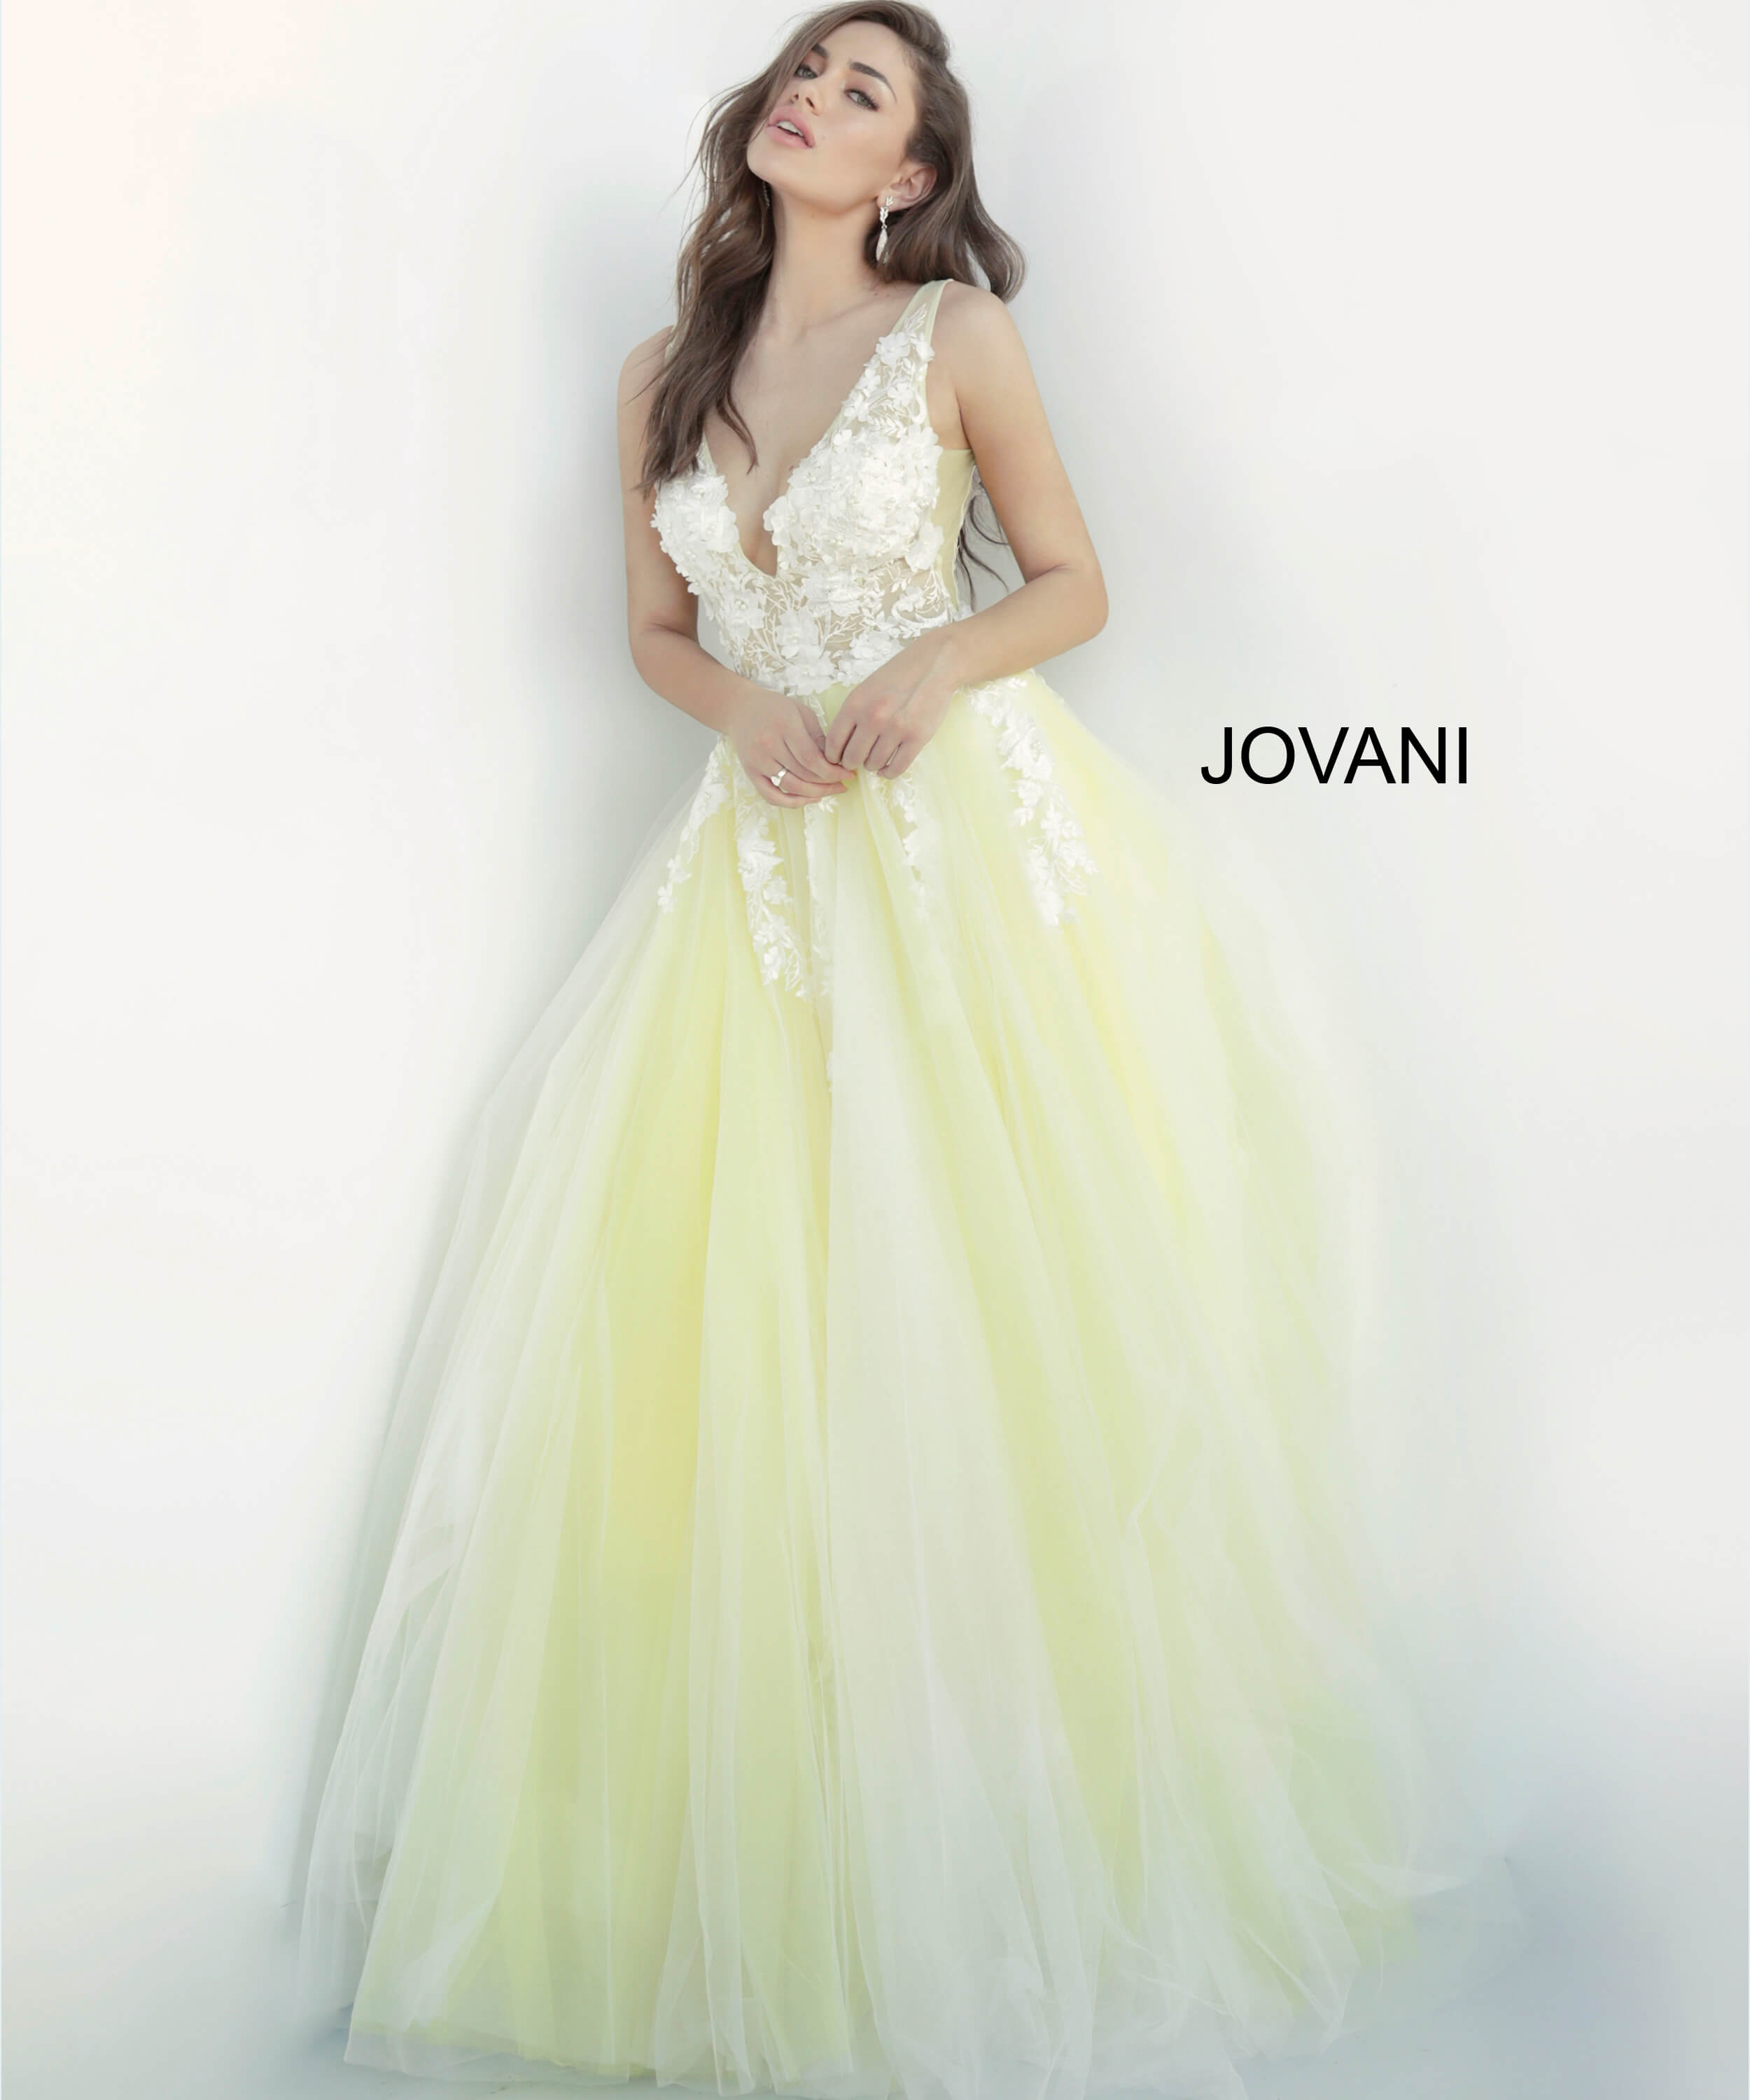 Jovani 55634 | Floral Applique V Neck